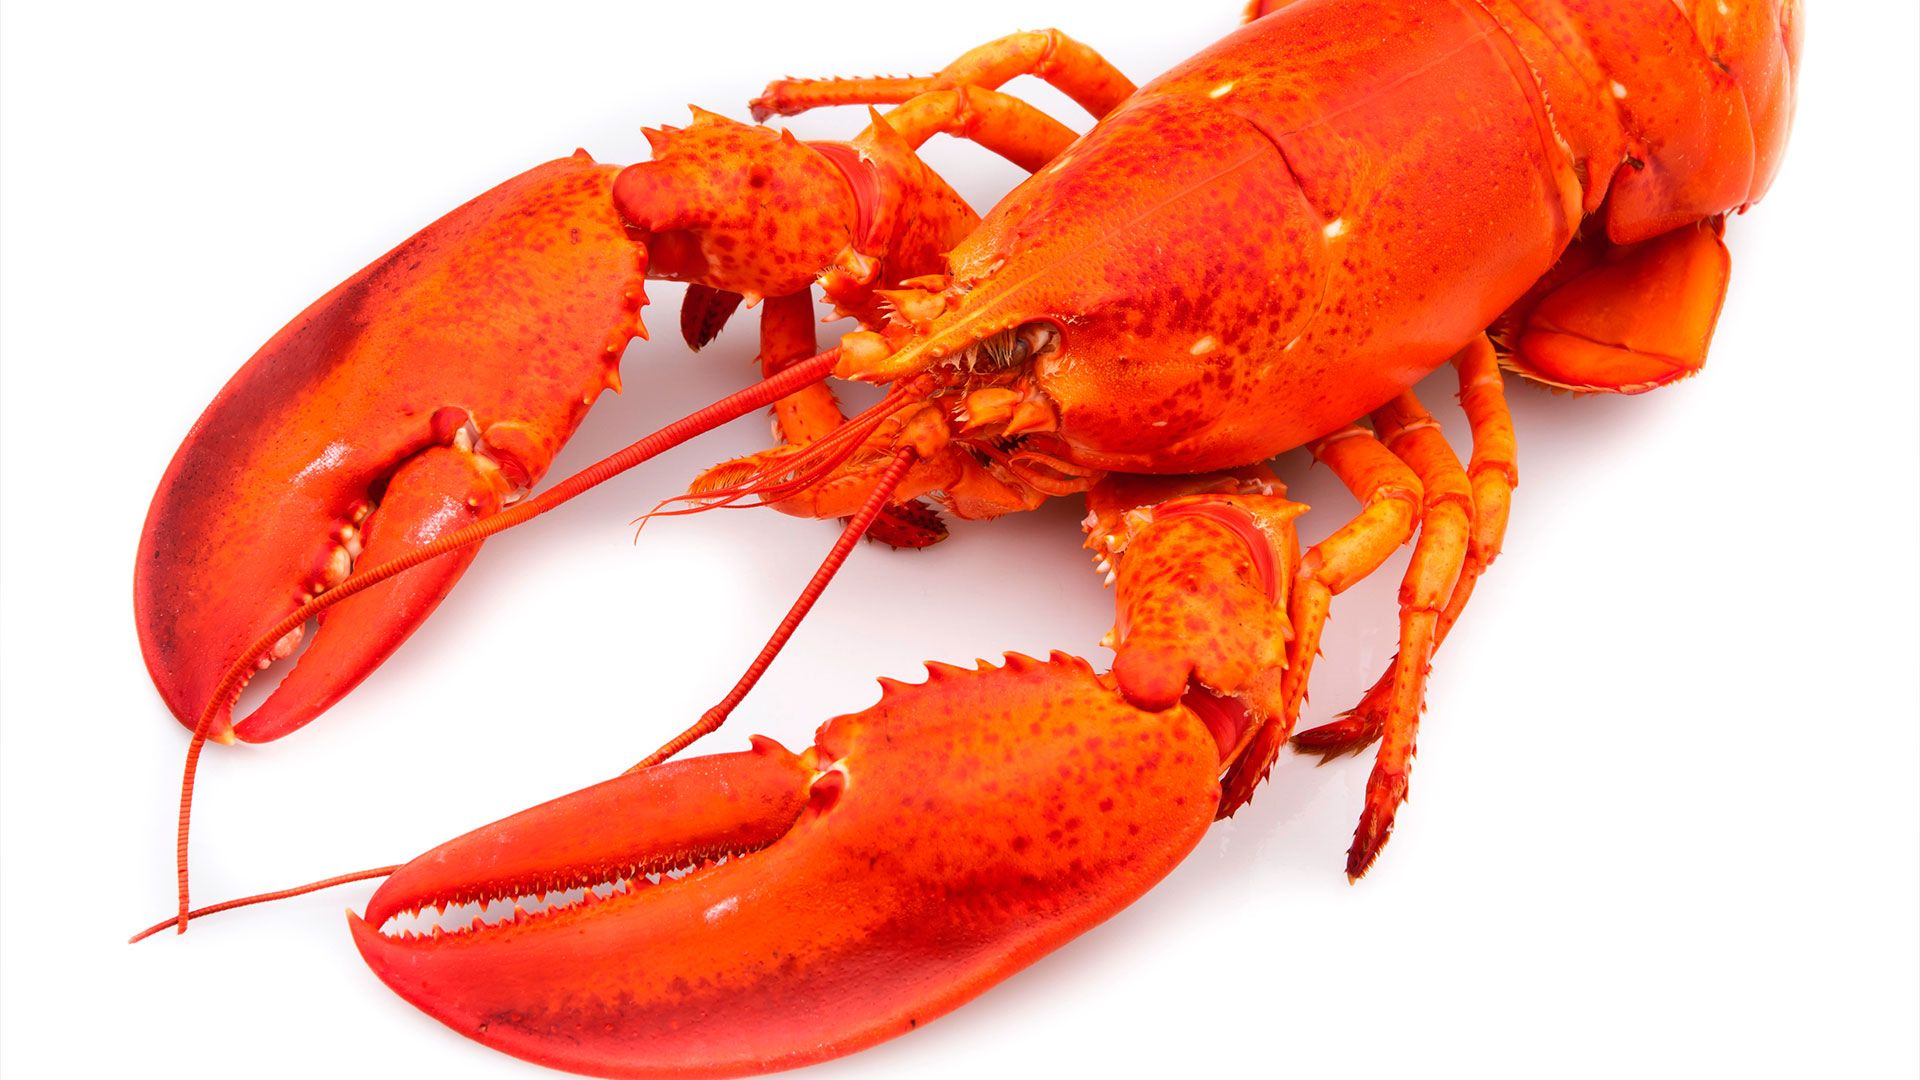 Lobster wallpaper image hd